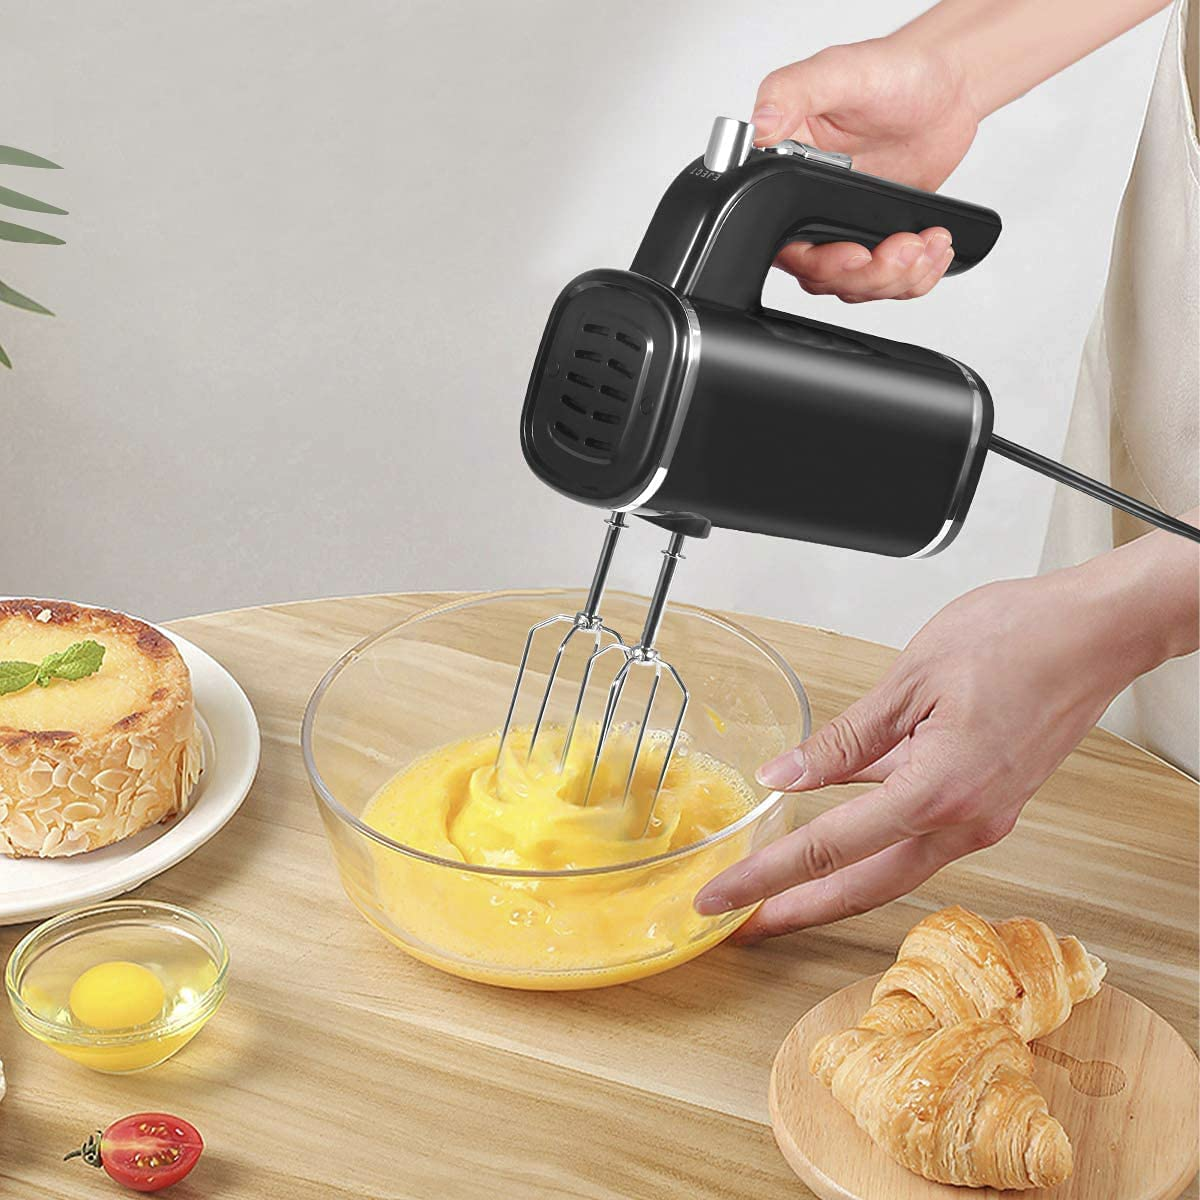 Hand Mixer Electric, 5 Speed Powerful handheld Mixer for Easy Whipping, Mixing Cookies, Brownies, Cakes, and Dough Batters(Black)